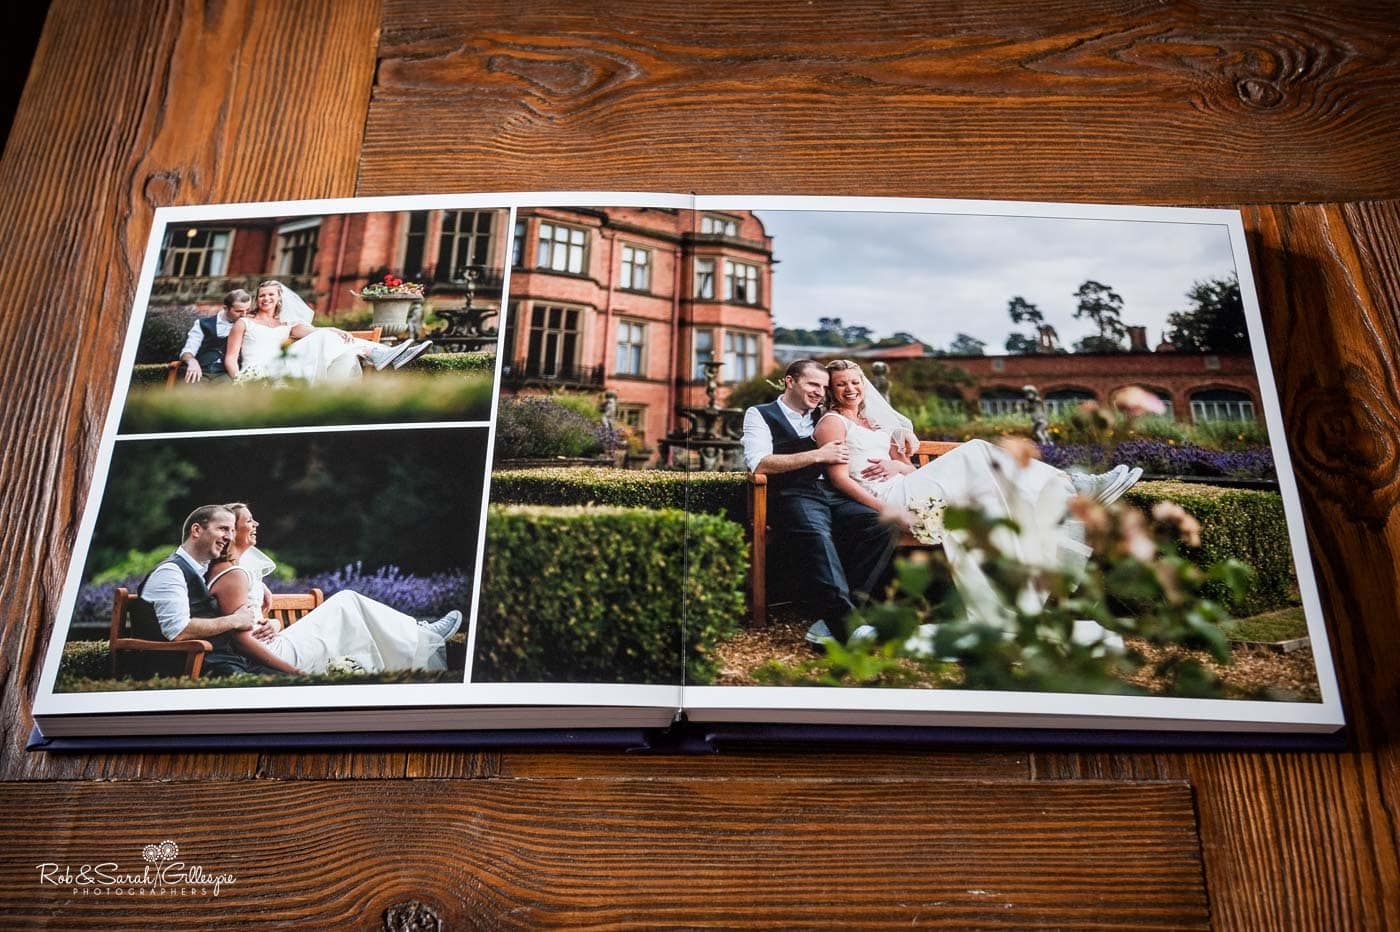 A wedding album opened to show full-width pictures